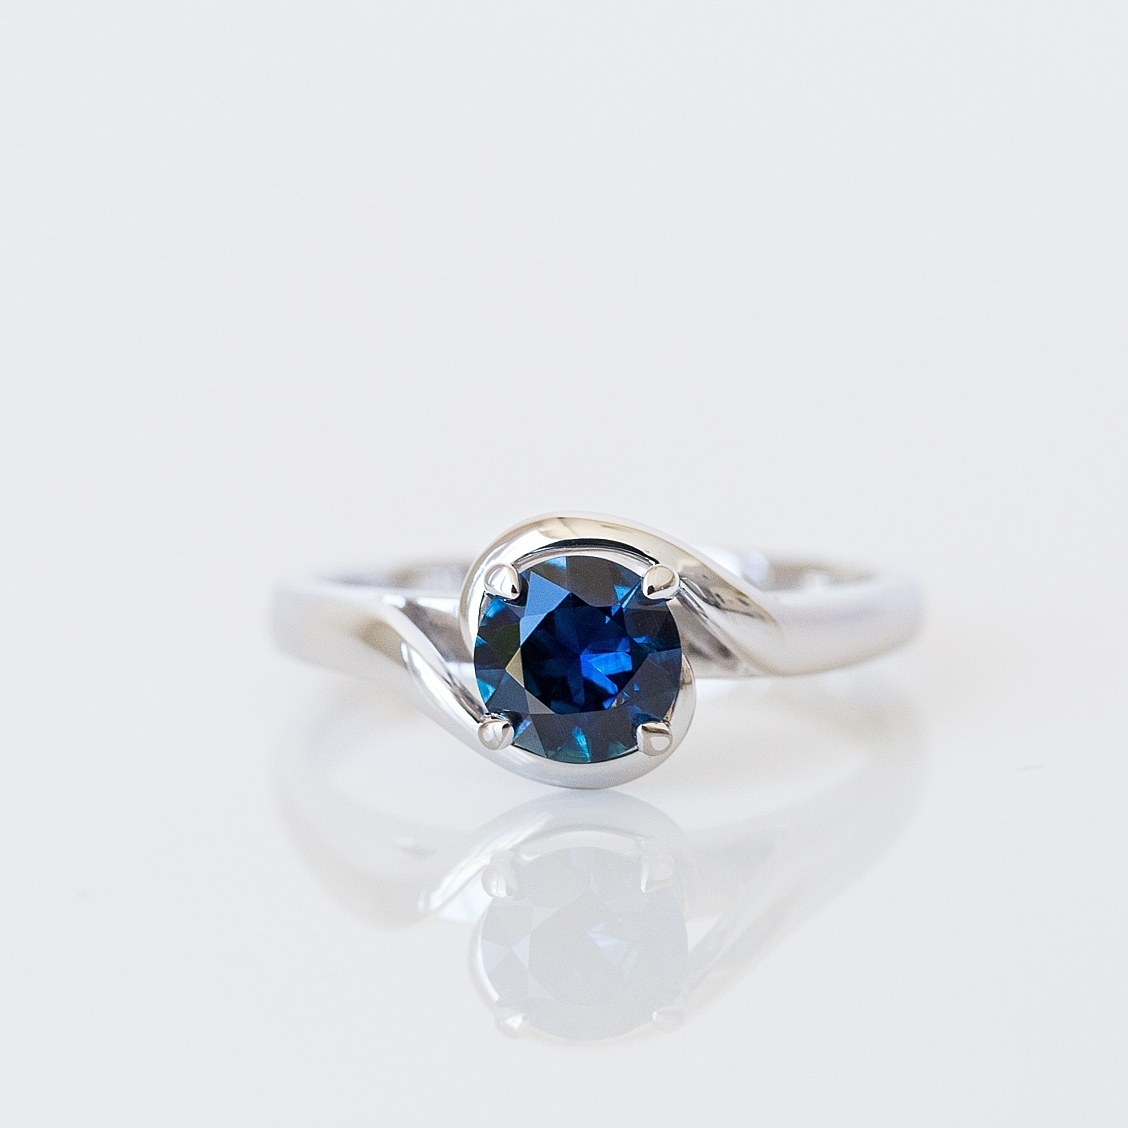 Australian sapphire engagement ring Harlequin Jewellers Canberra